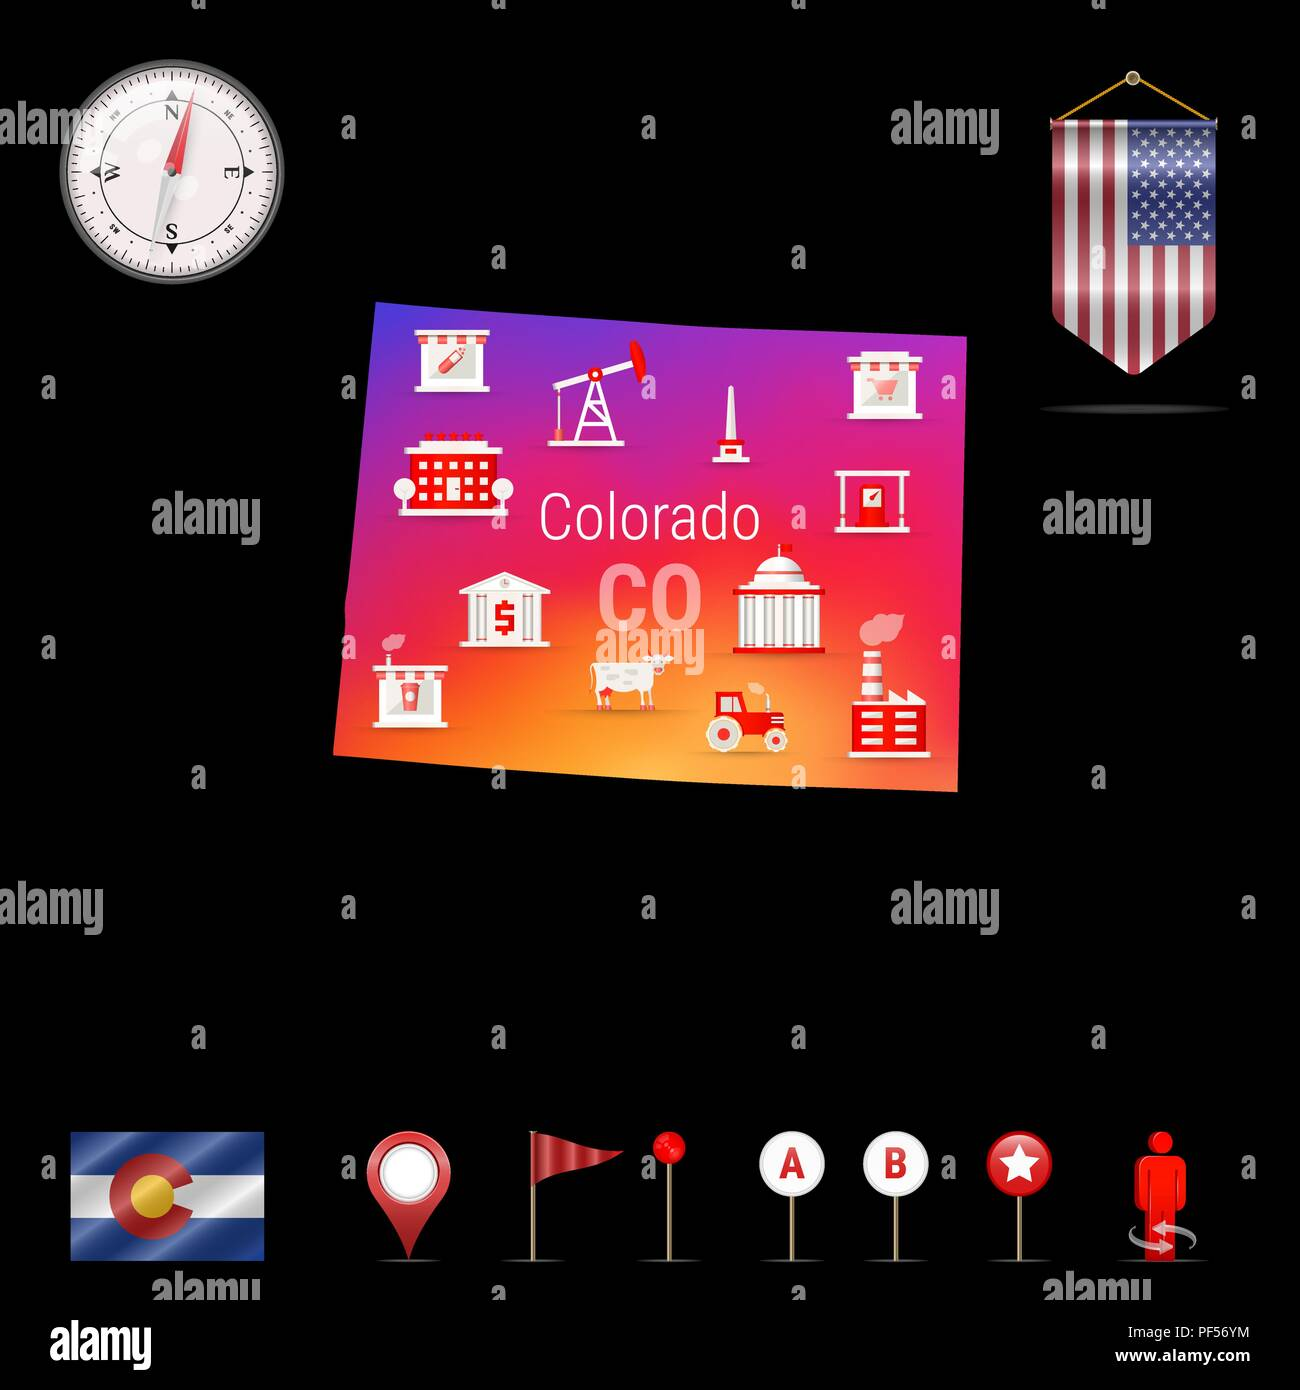 Colorado Vector Map, Night View. Compass Icon, Map Navigation Elements. Pennant Flag of the United States. Vector Flag of Colorado. Various Industries, Economic Geography Icons. - Stock Vector